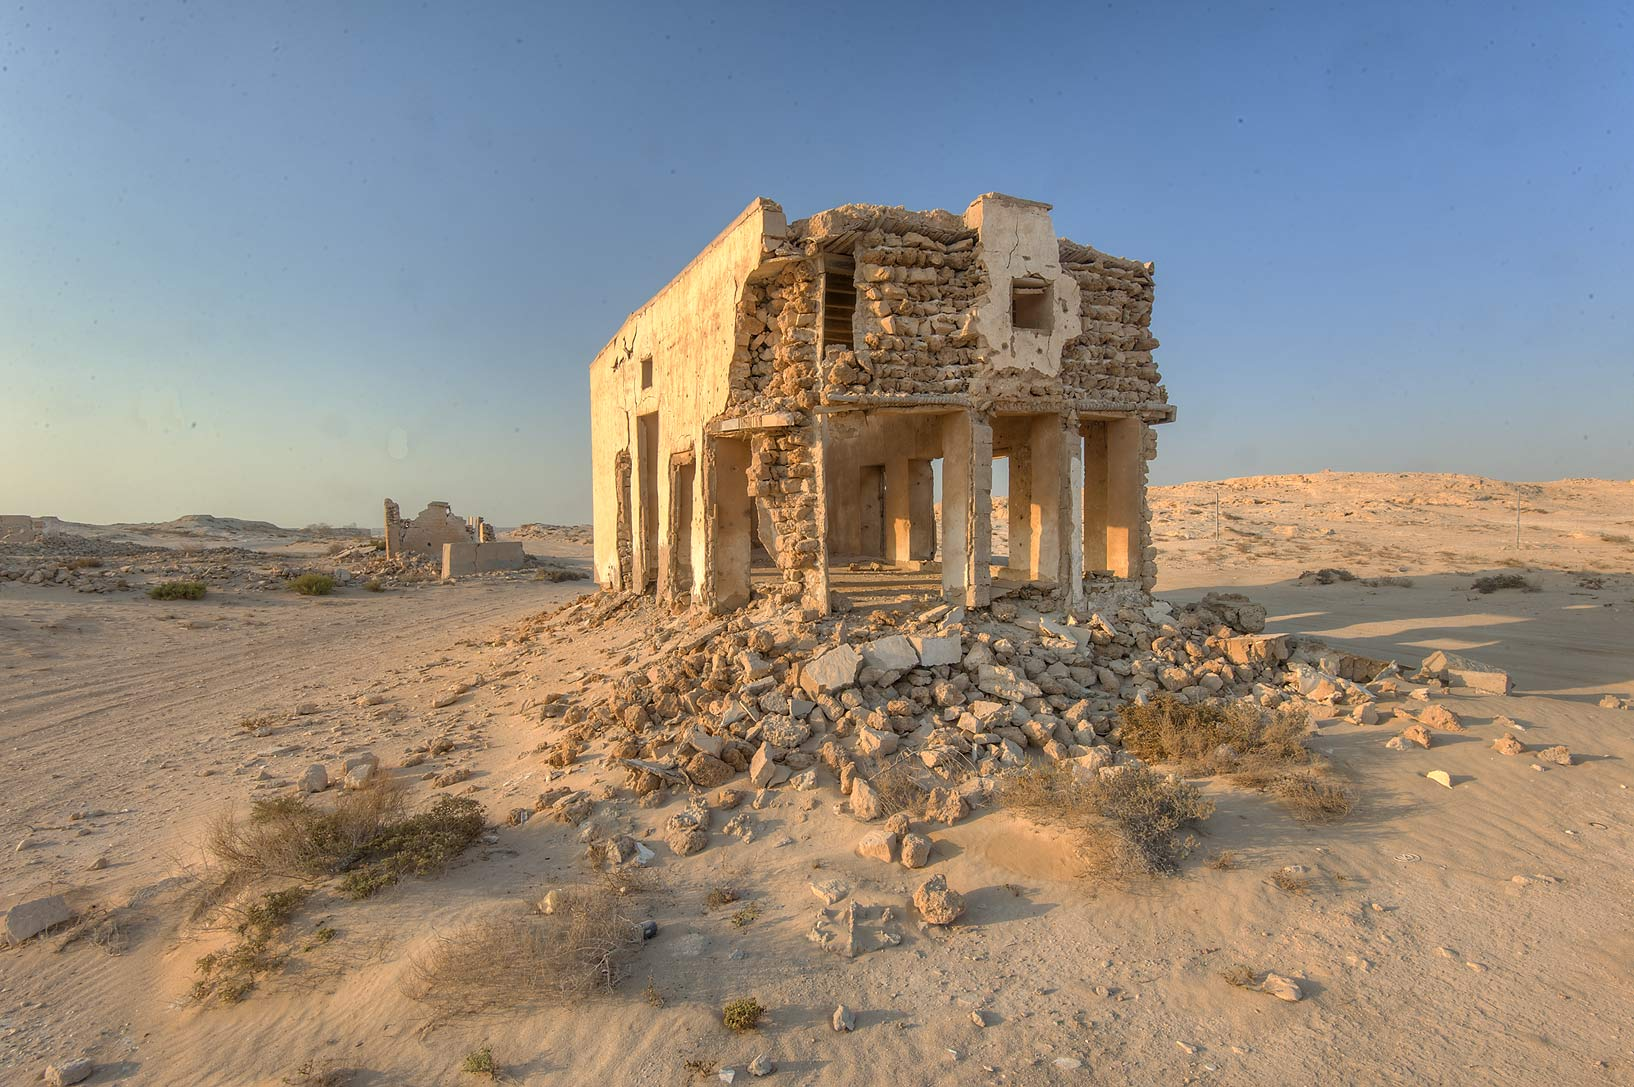 Stone ruins near a beach road in old fishing...eastern coast, Ash Shamal area. Qatar